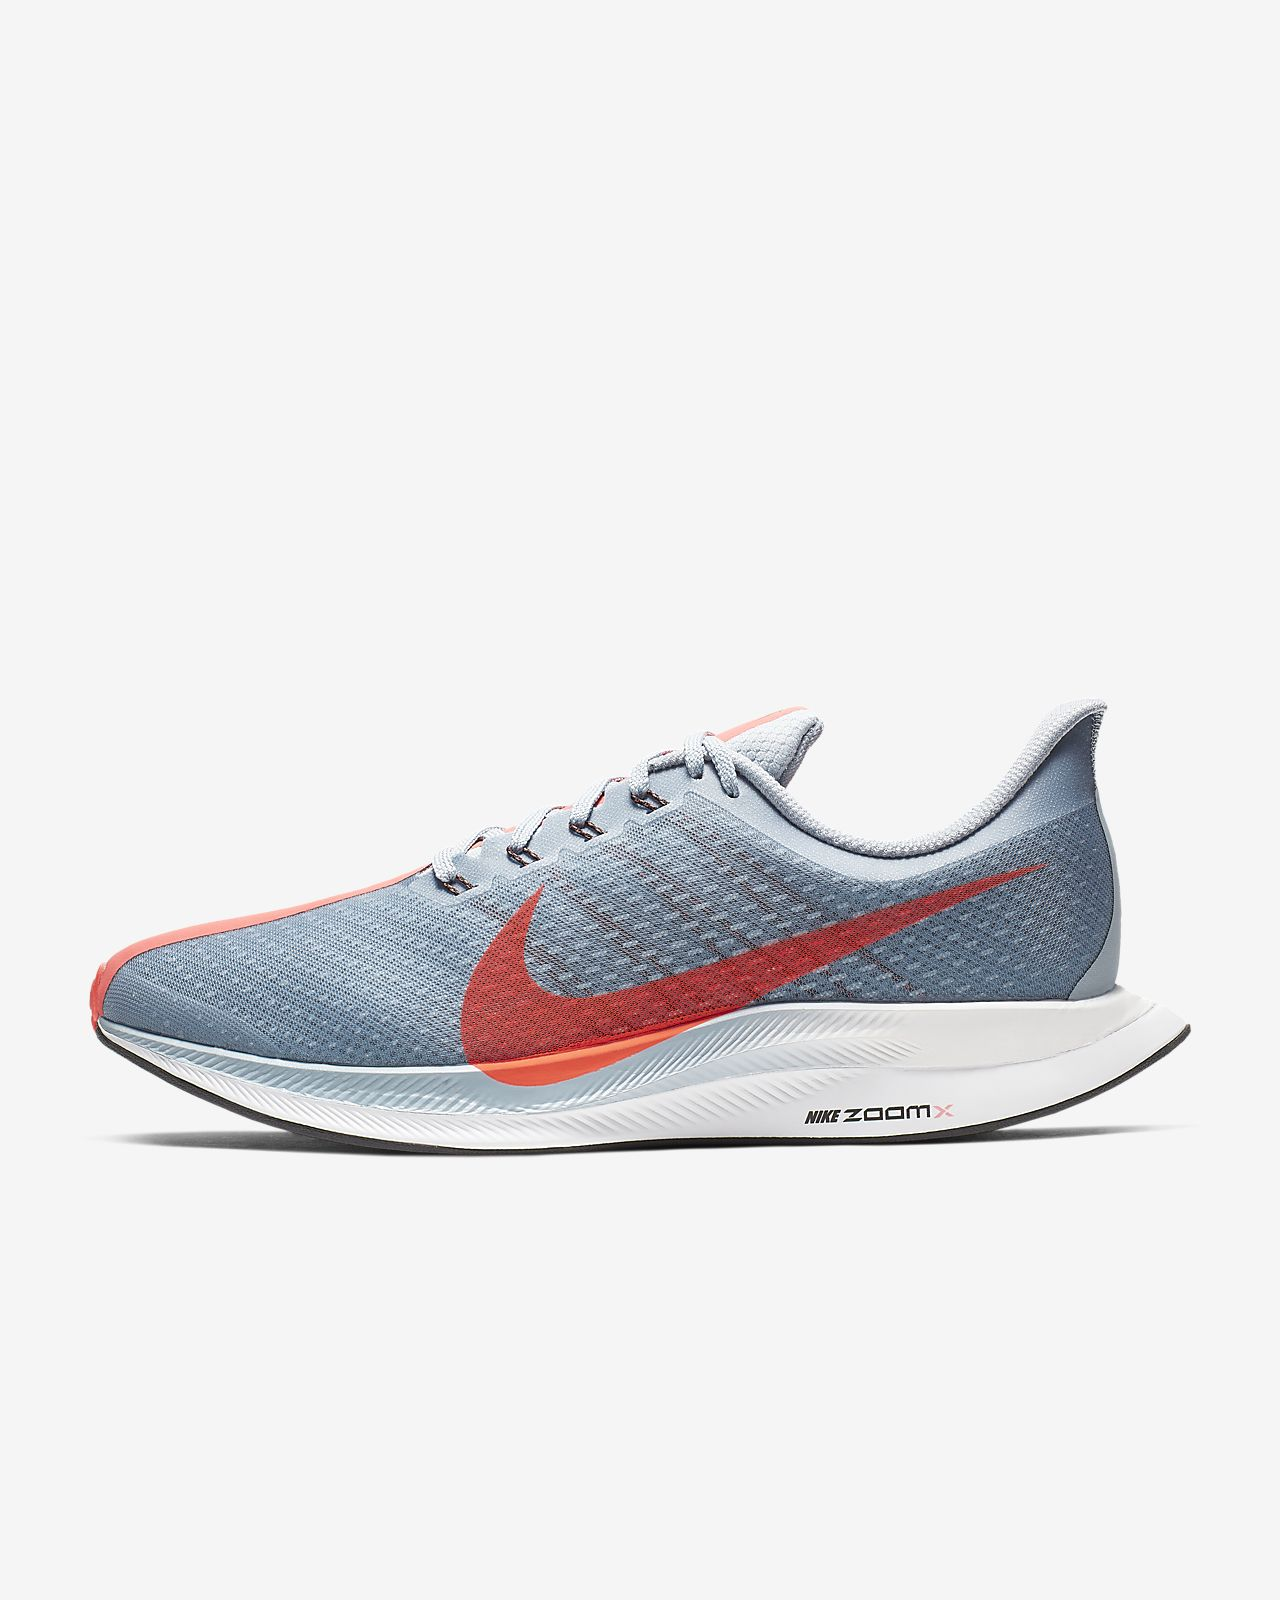 9846f137e672a Nike Zoom Pegasus Turbo Men s Running Shoe. Nike.com CA